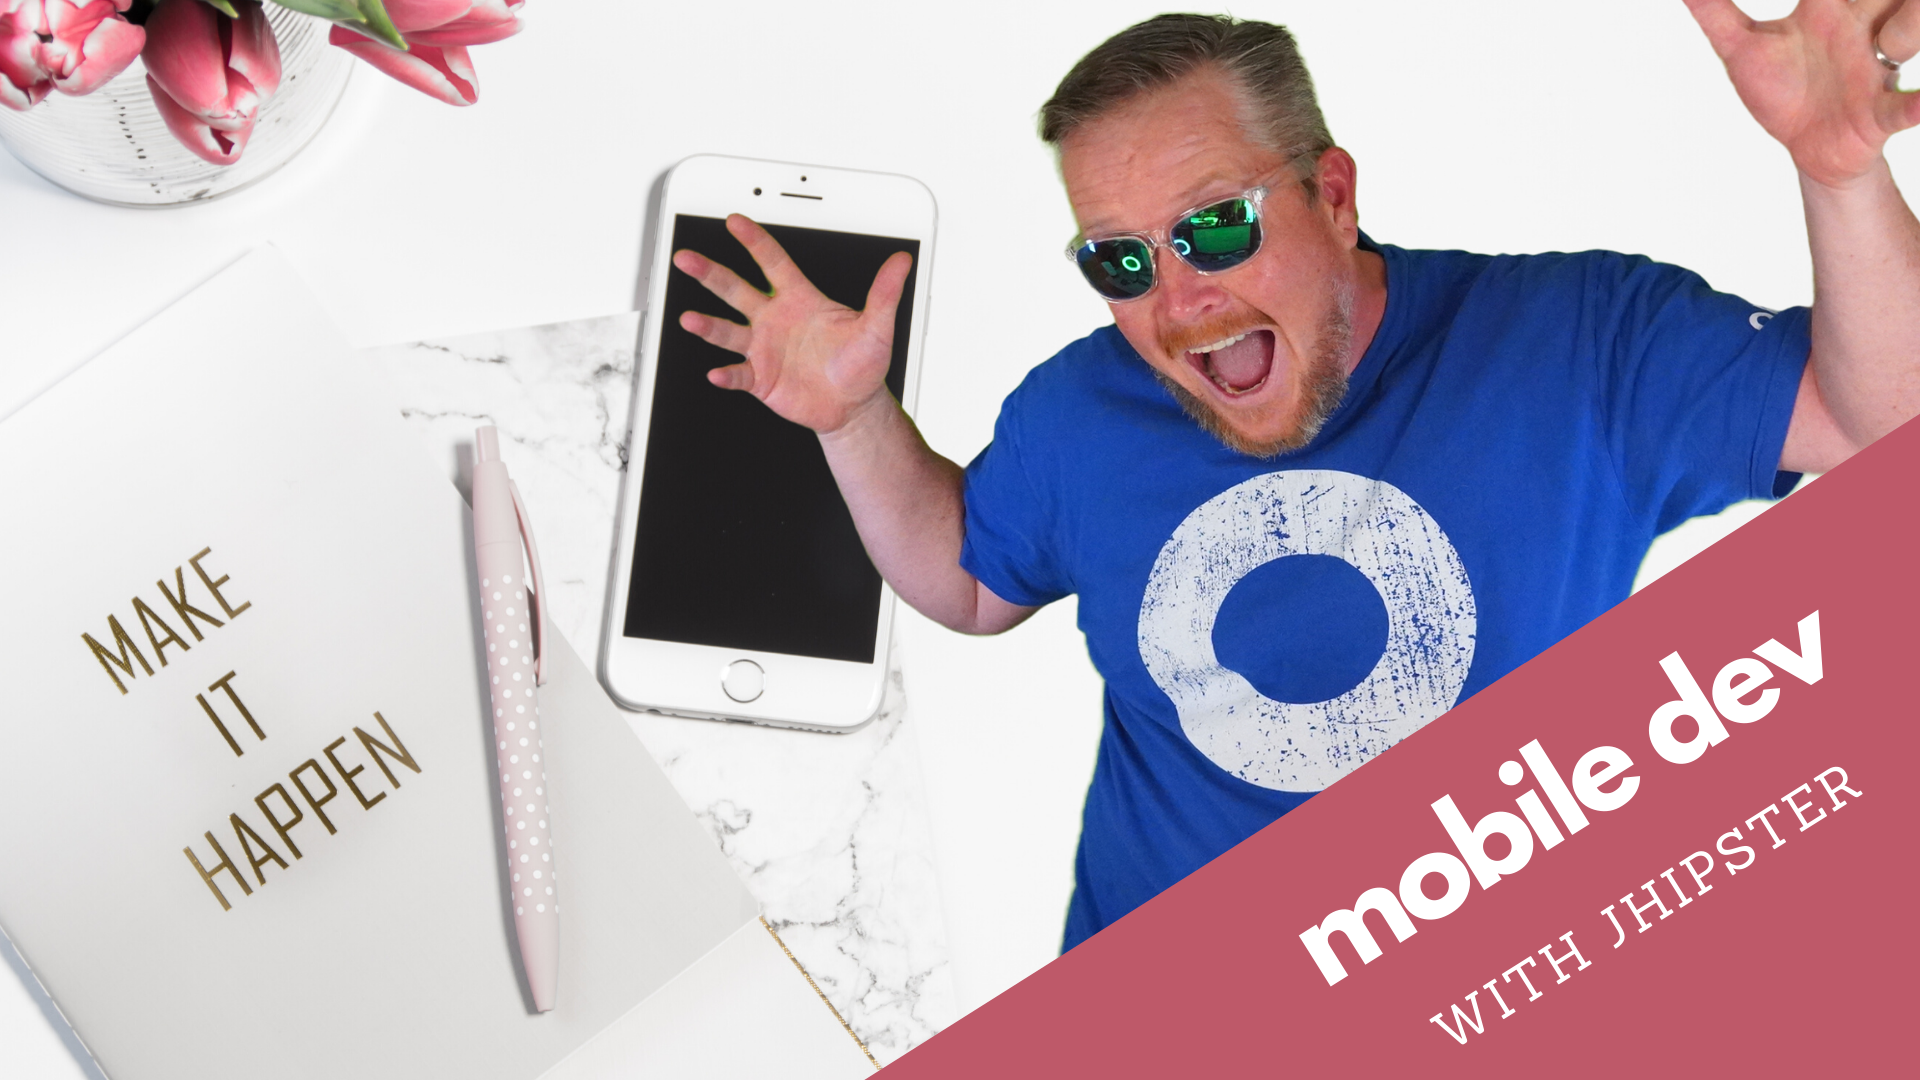 Mobile Development with Ionic, React Native, and JHipster